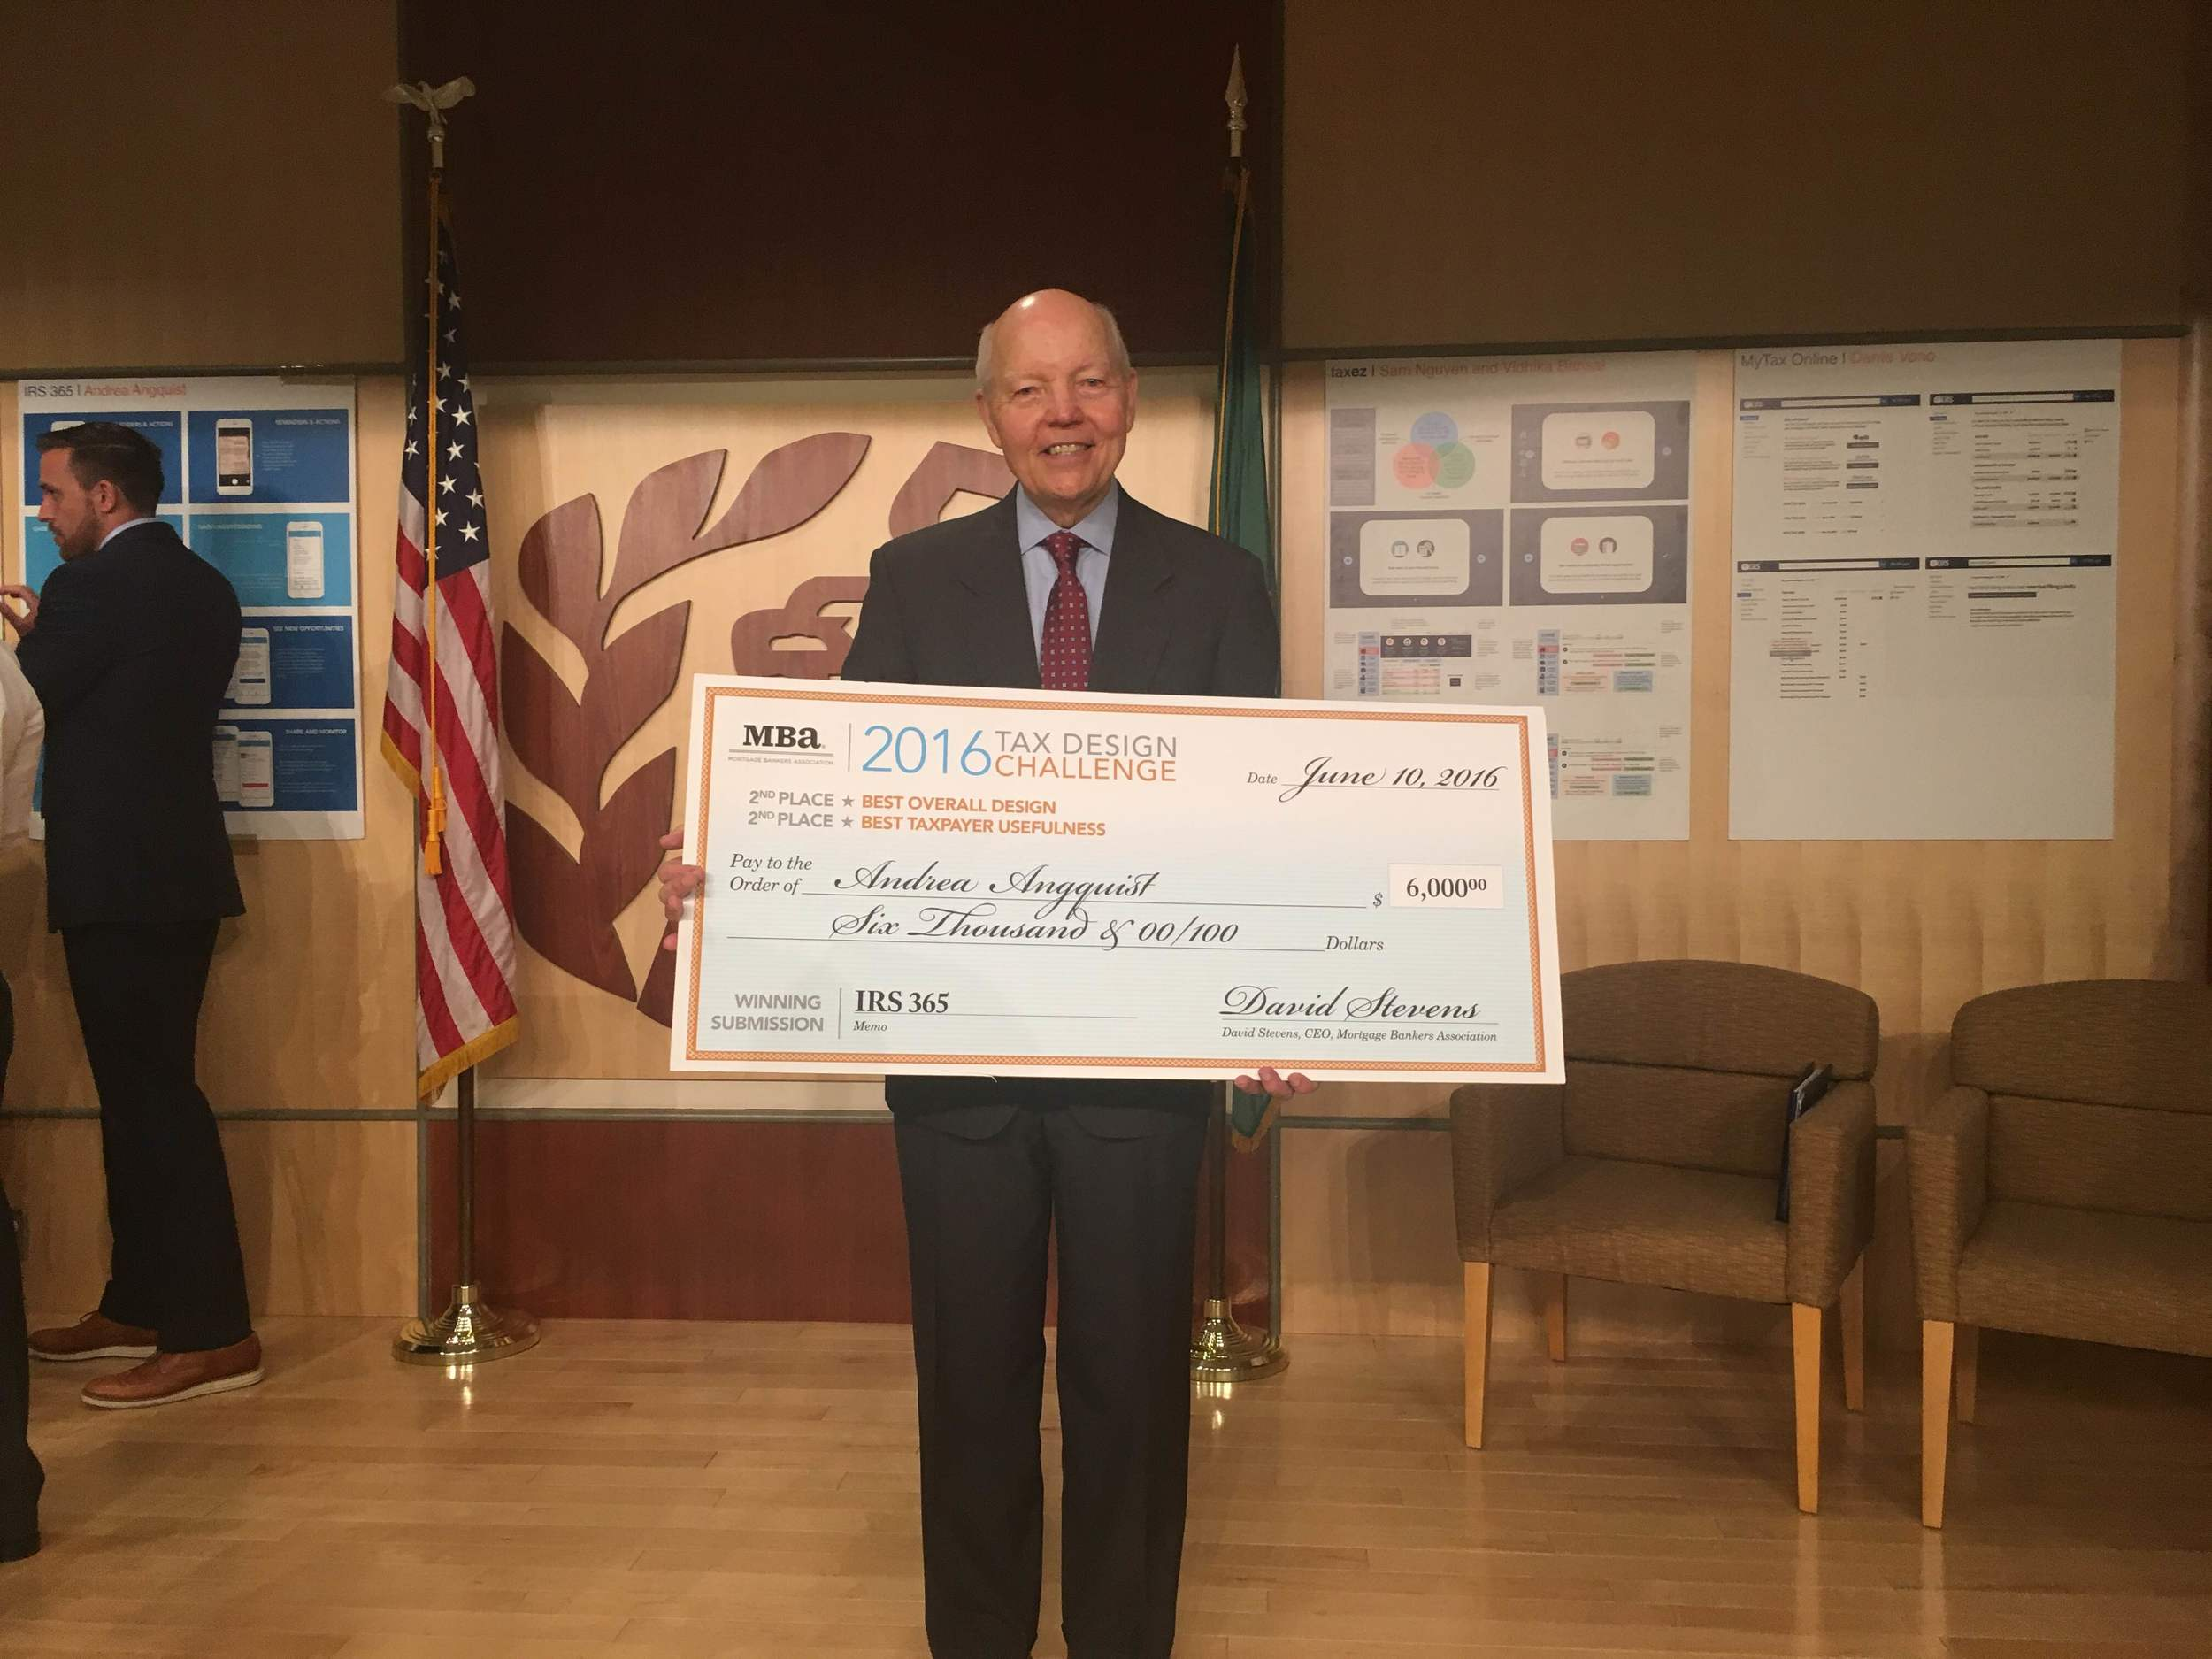 Here's the IRS commissioner with my giant check.  Currently the giant check resides somewhere in the IRS main headquarters, but I'd love to bring it home.  Ping me if you're ever passing through DC and have room in your luggage;)